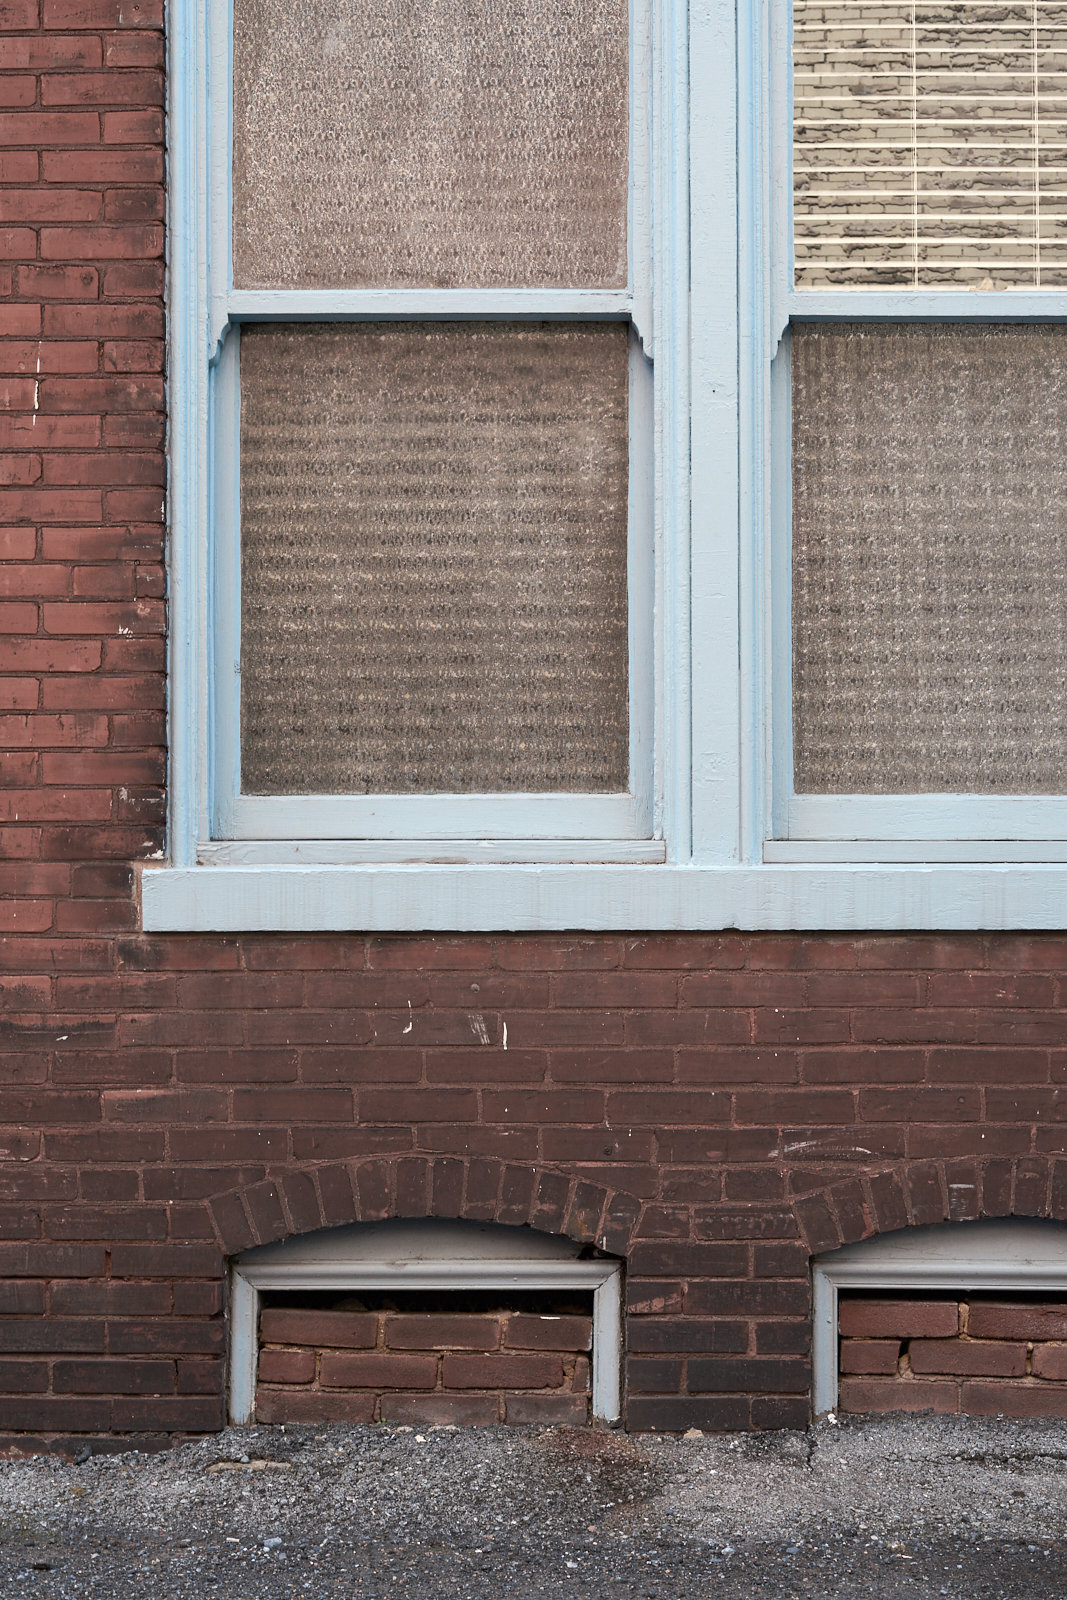 Windows - Harrisburg, Pennsylvania - fine art street photography